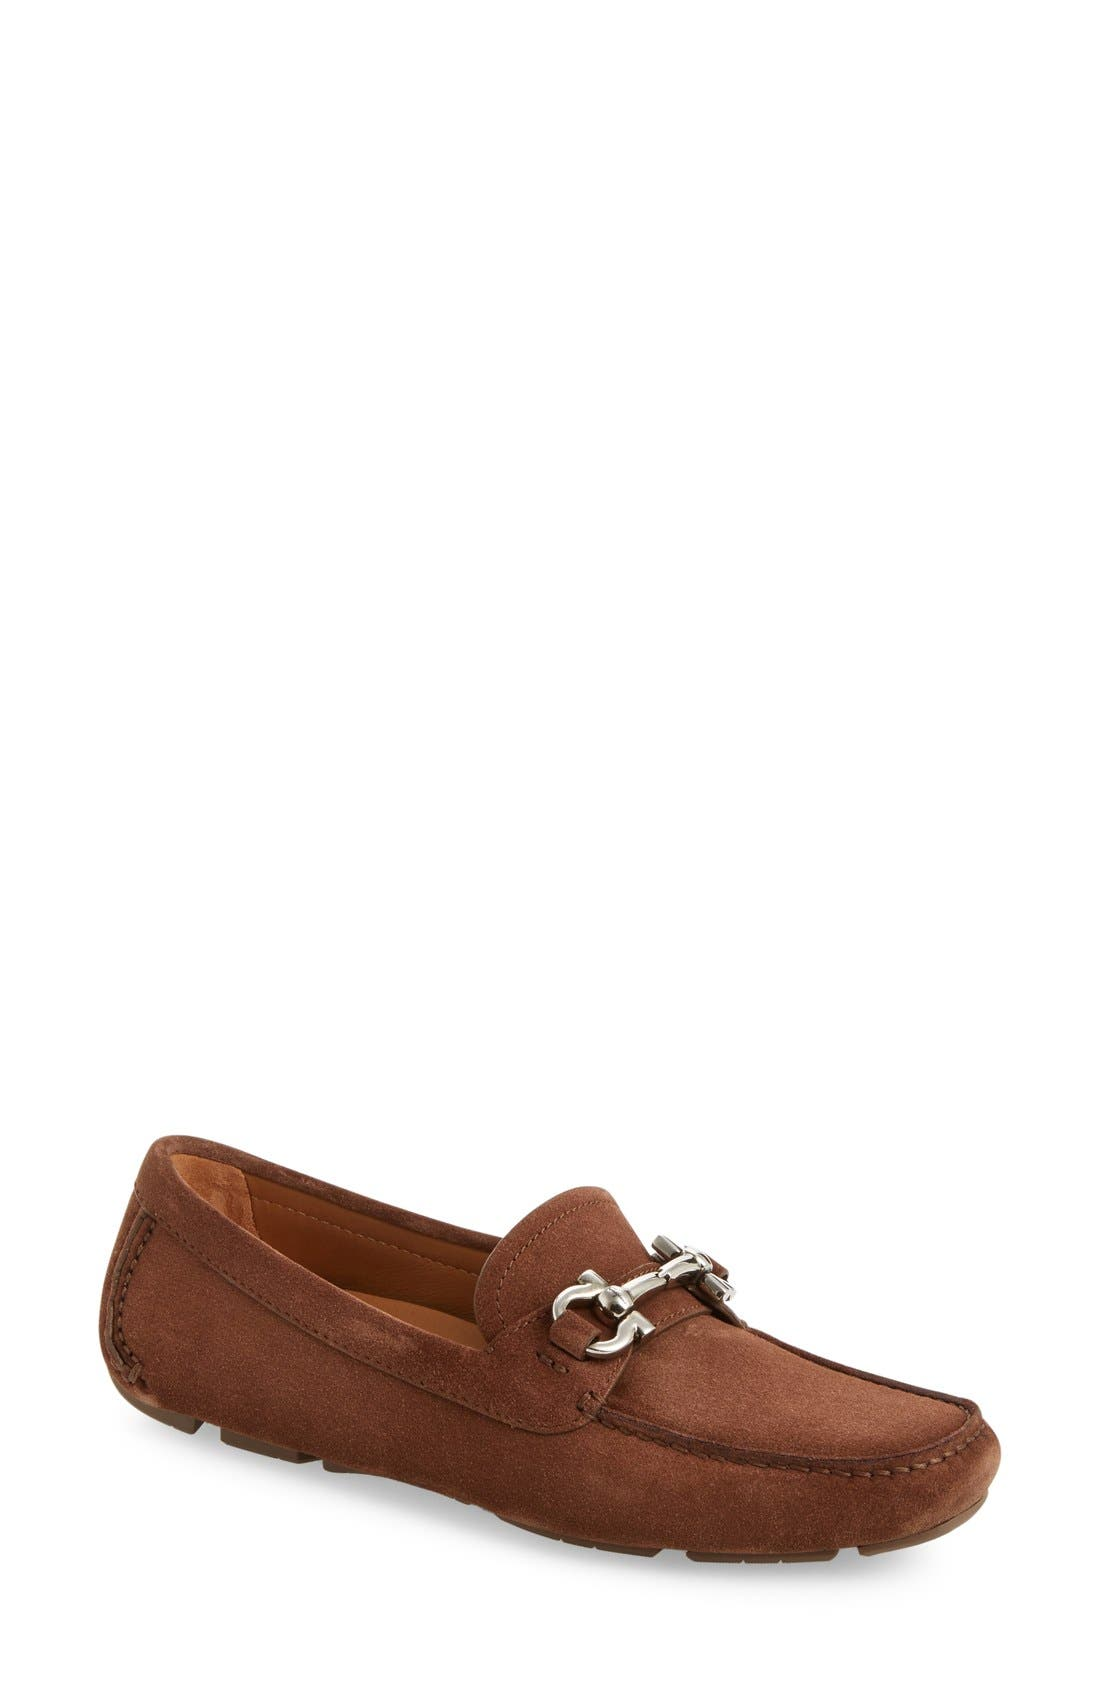 Parigi Loafer,                             Main thumbnail 2, color,